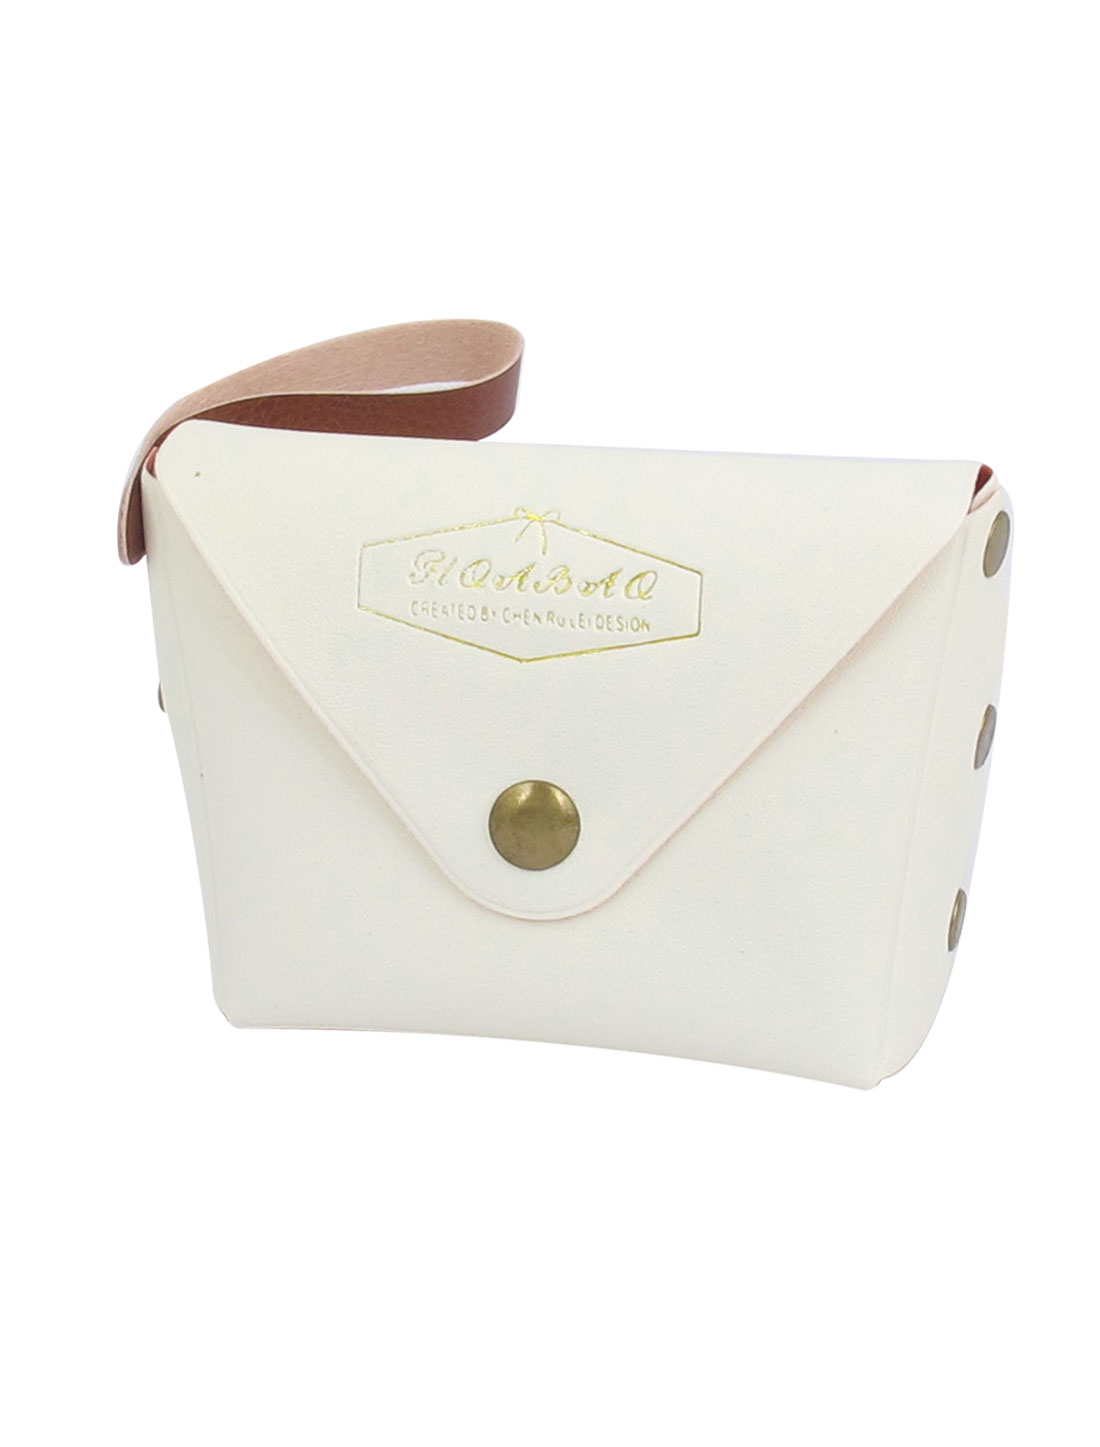 "3.7"" Length White Faux Leather Cute Mini Single Compartment English Words Pattern Portable Change Coin Purse Cash Key for Kids Ladies"